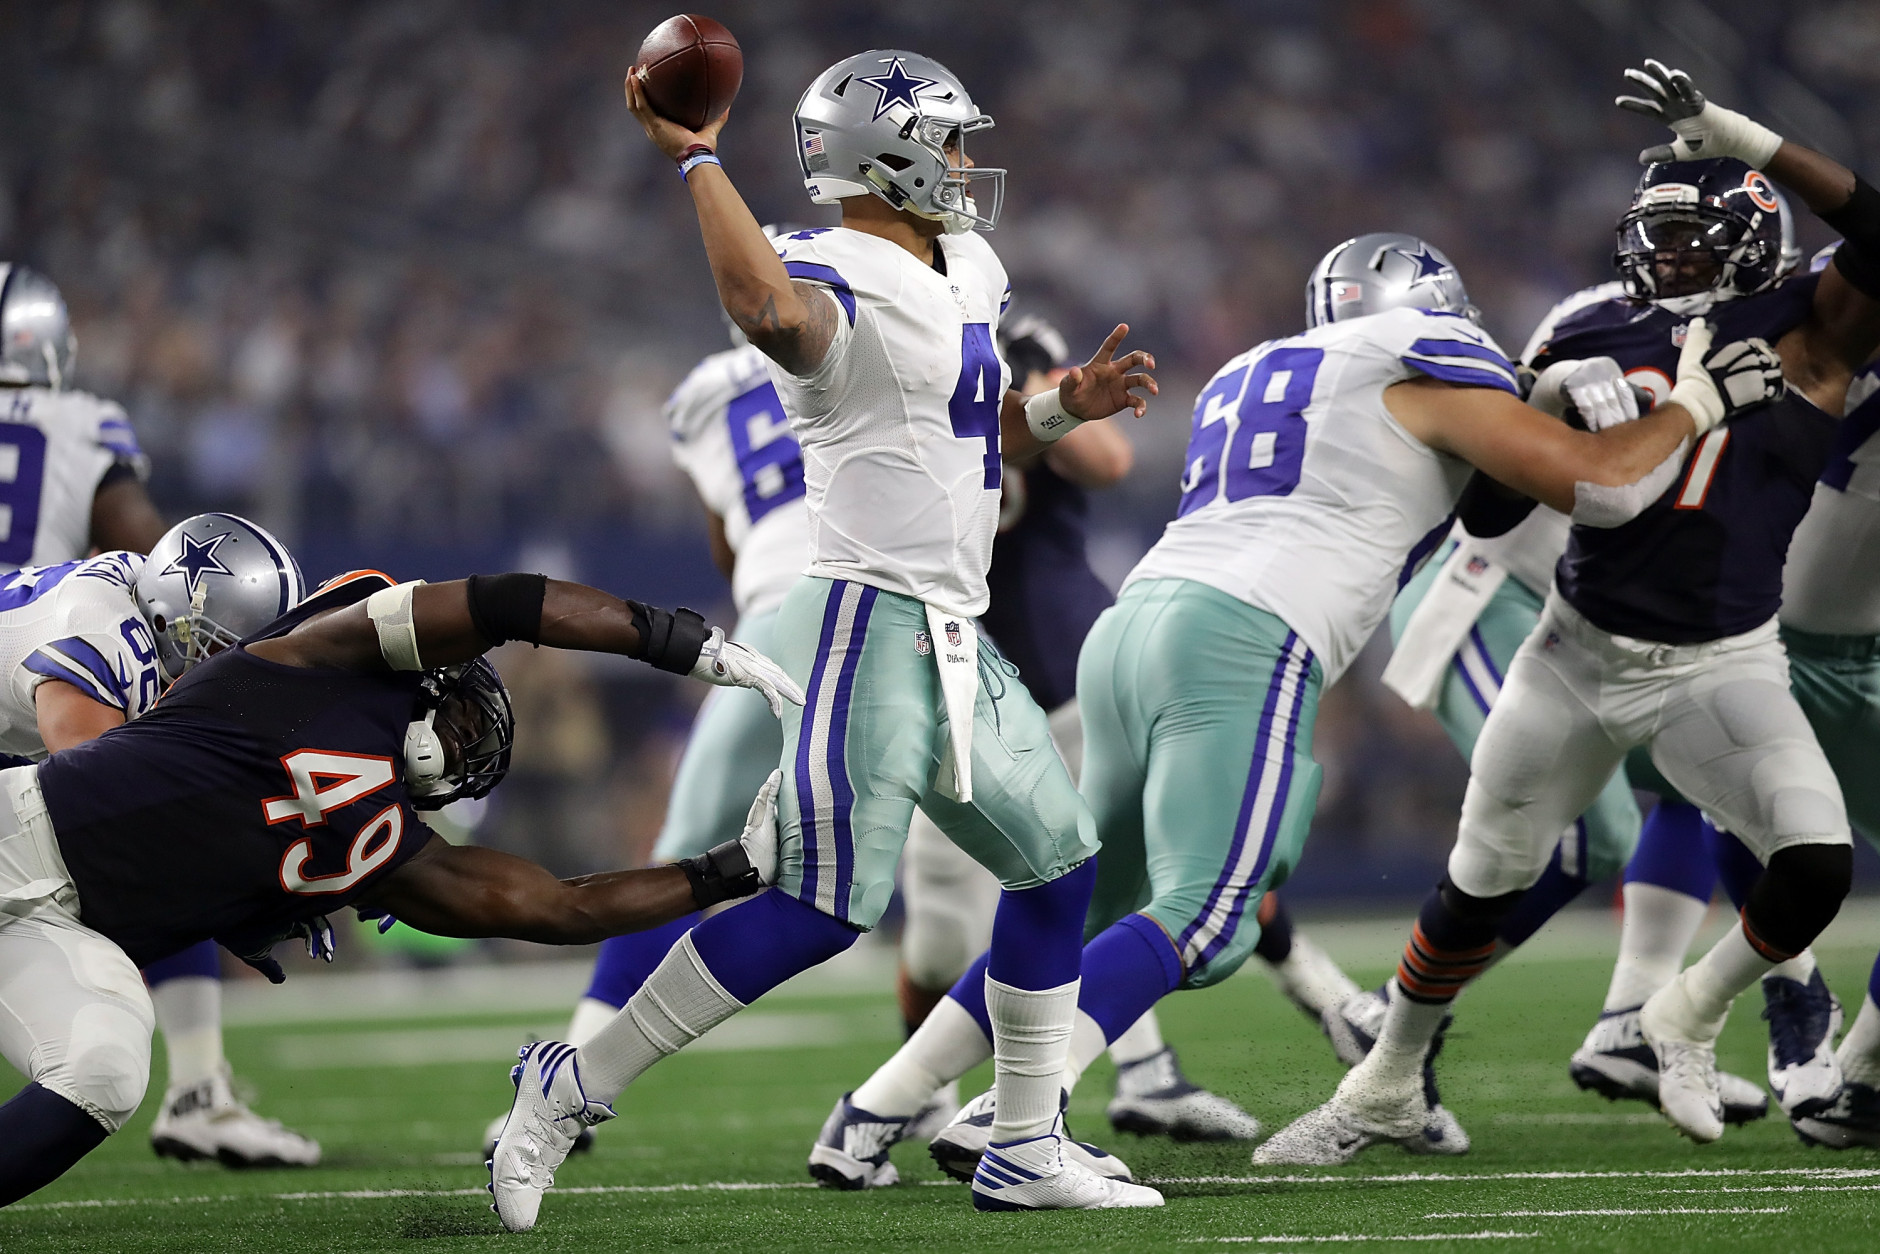 ARLINGTON, TX - SEPTEMBER 25:  Dak Prescott #4 of the Dallas Cowboys throws against the Chicago Bears in the fourth quarter at AT&T Stadium on September 25, 2016 in Arlington, Texas.  (Photo by Ronald Martinez/Getty Images)